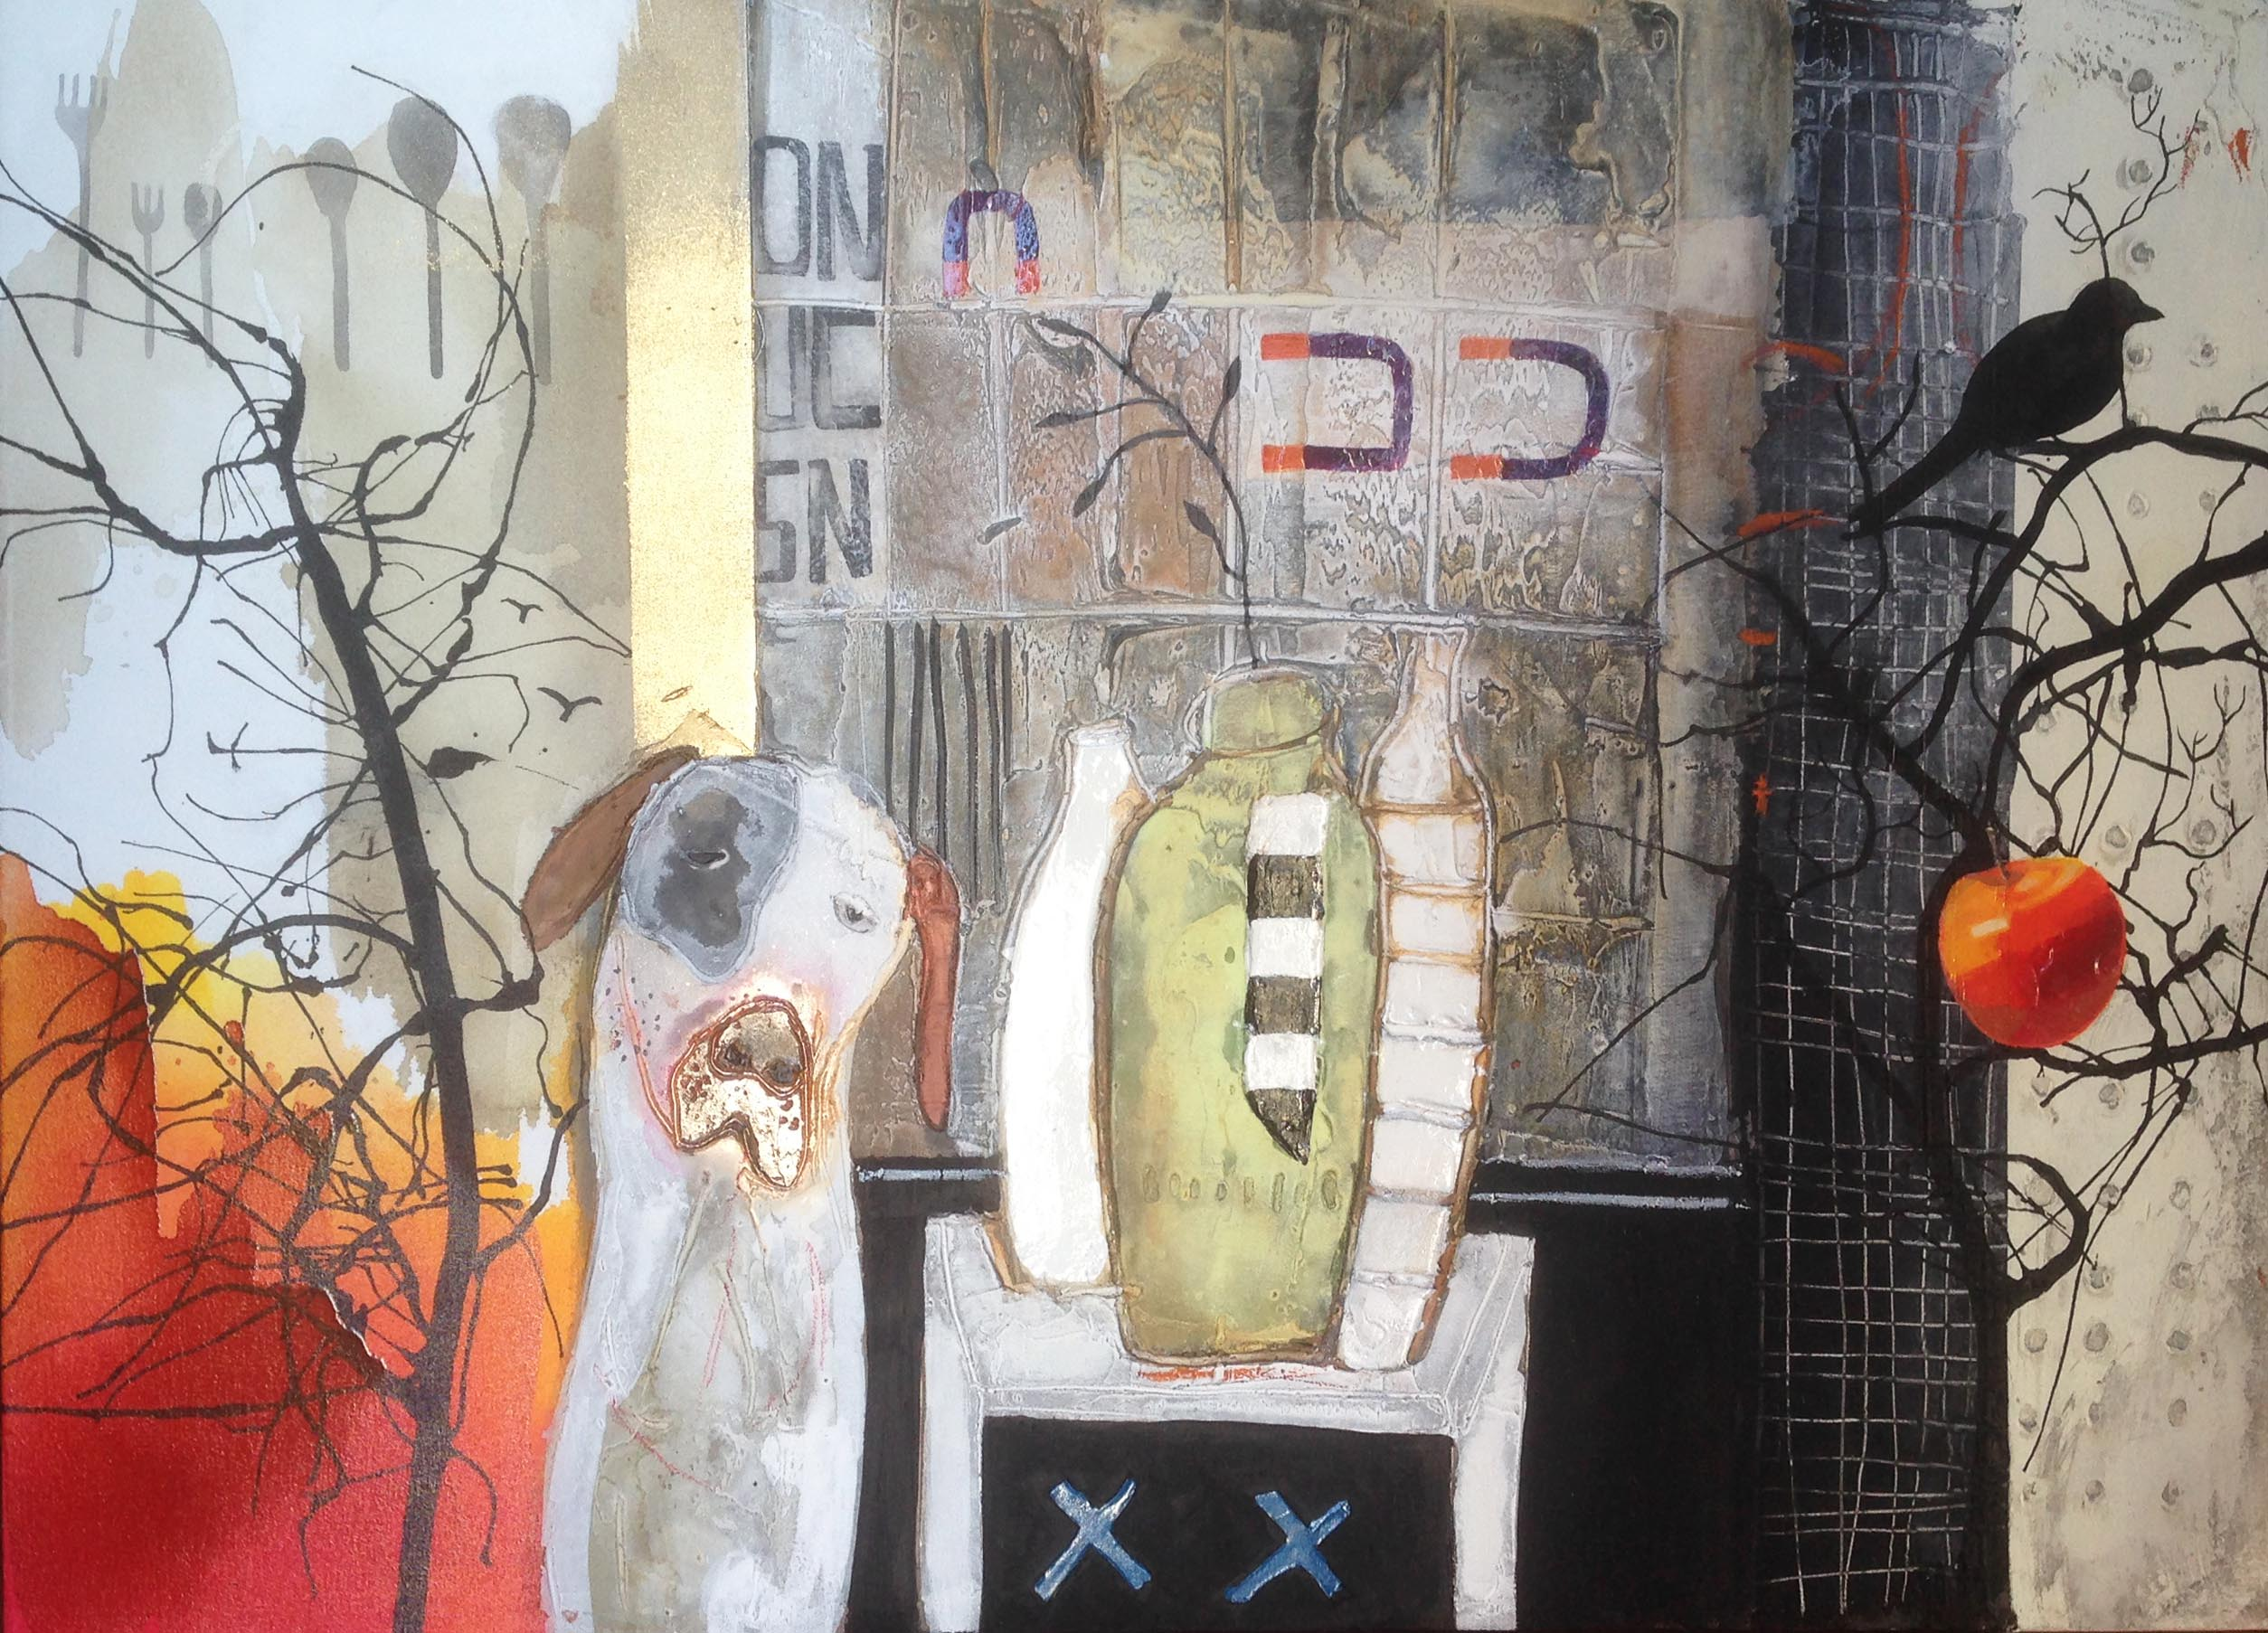 Vicky Sanders Abstract Figurative - Still Life With Dog #1